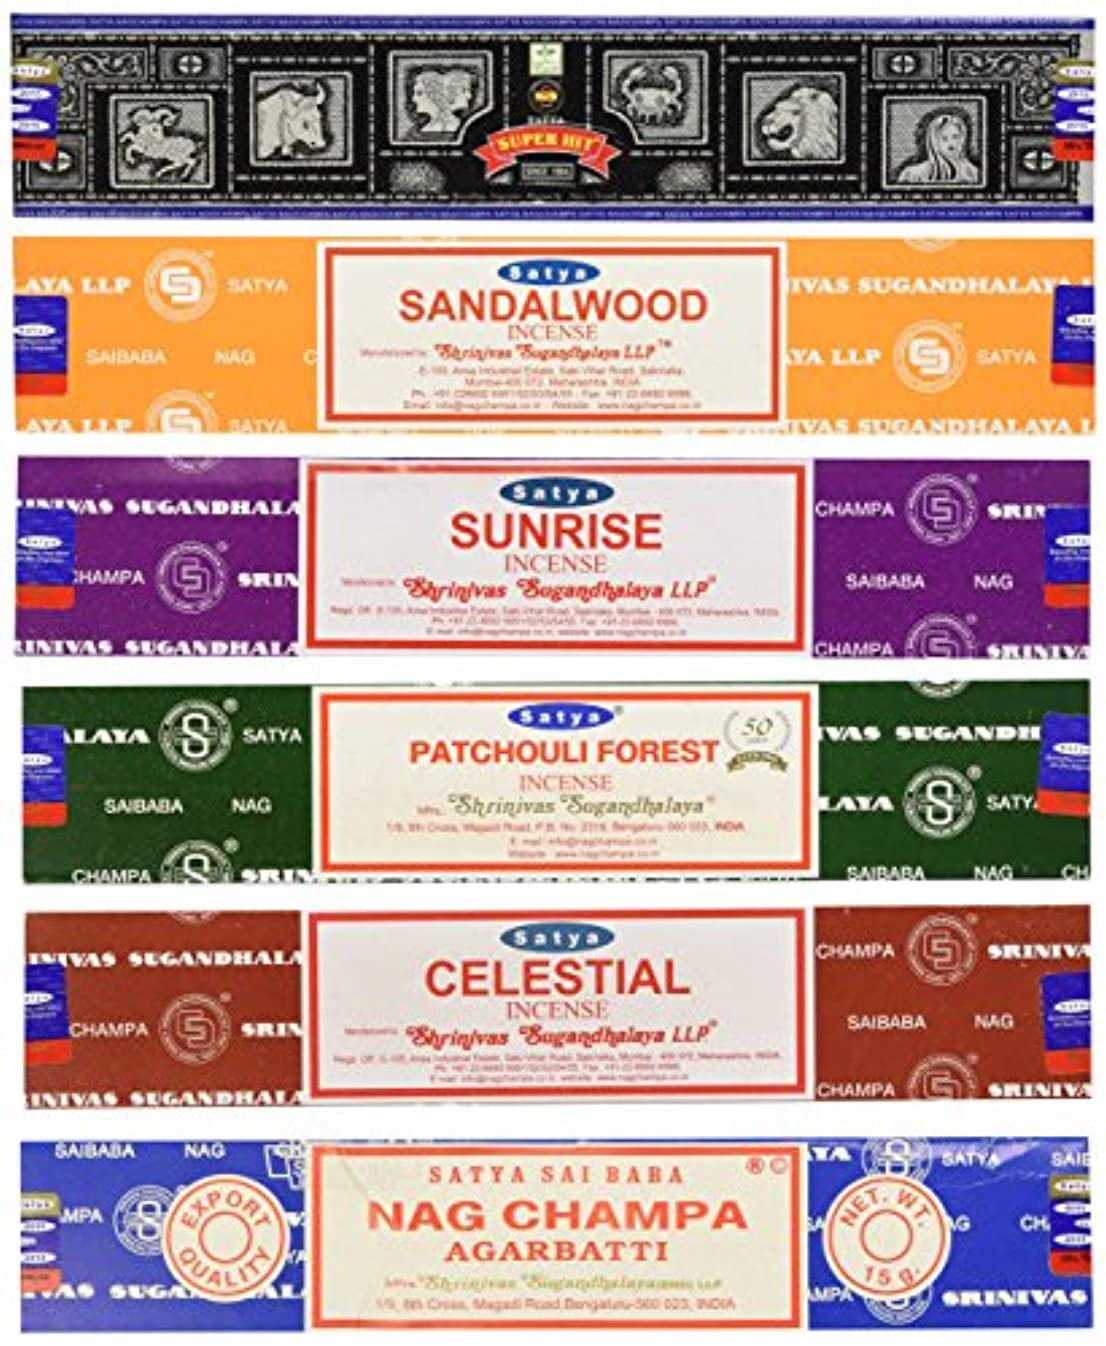 ソロズボン続編Set of 6 Nag Champa Sunrise Sandalwood Patchouli Celestial Super Hit by Satya